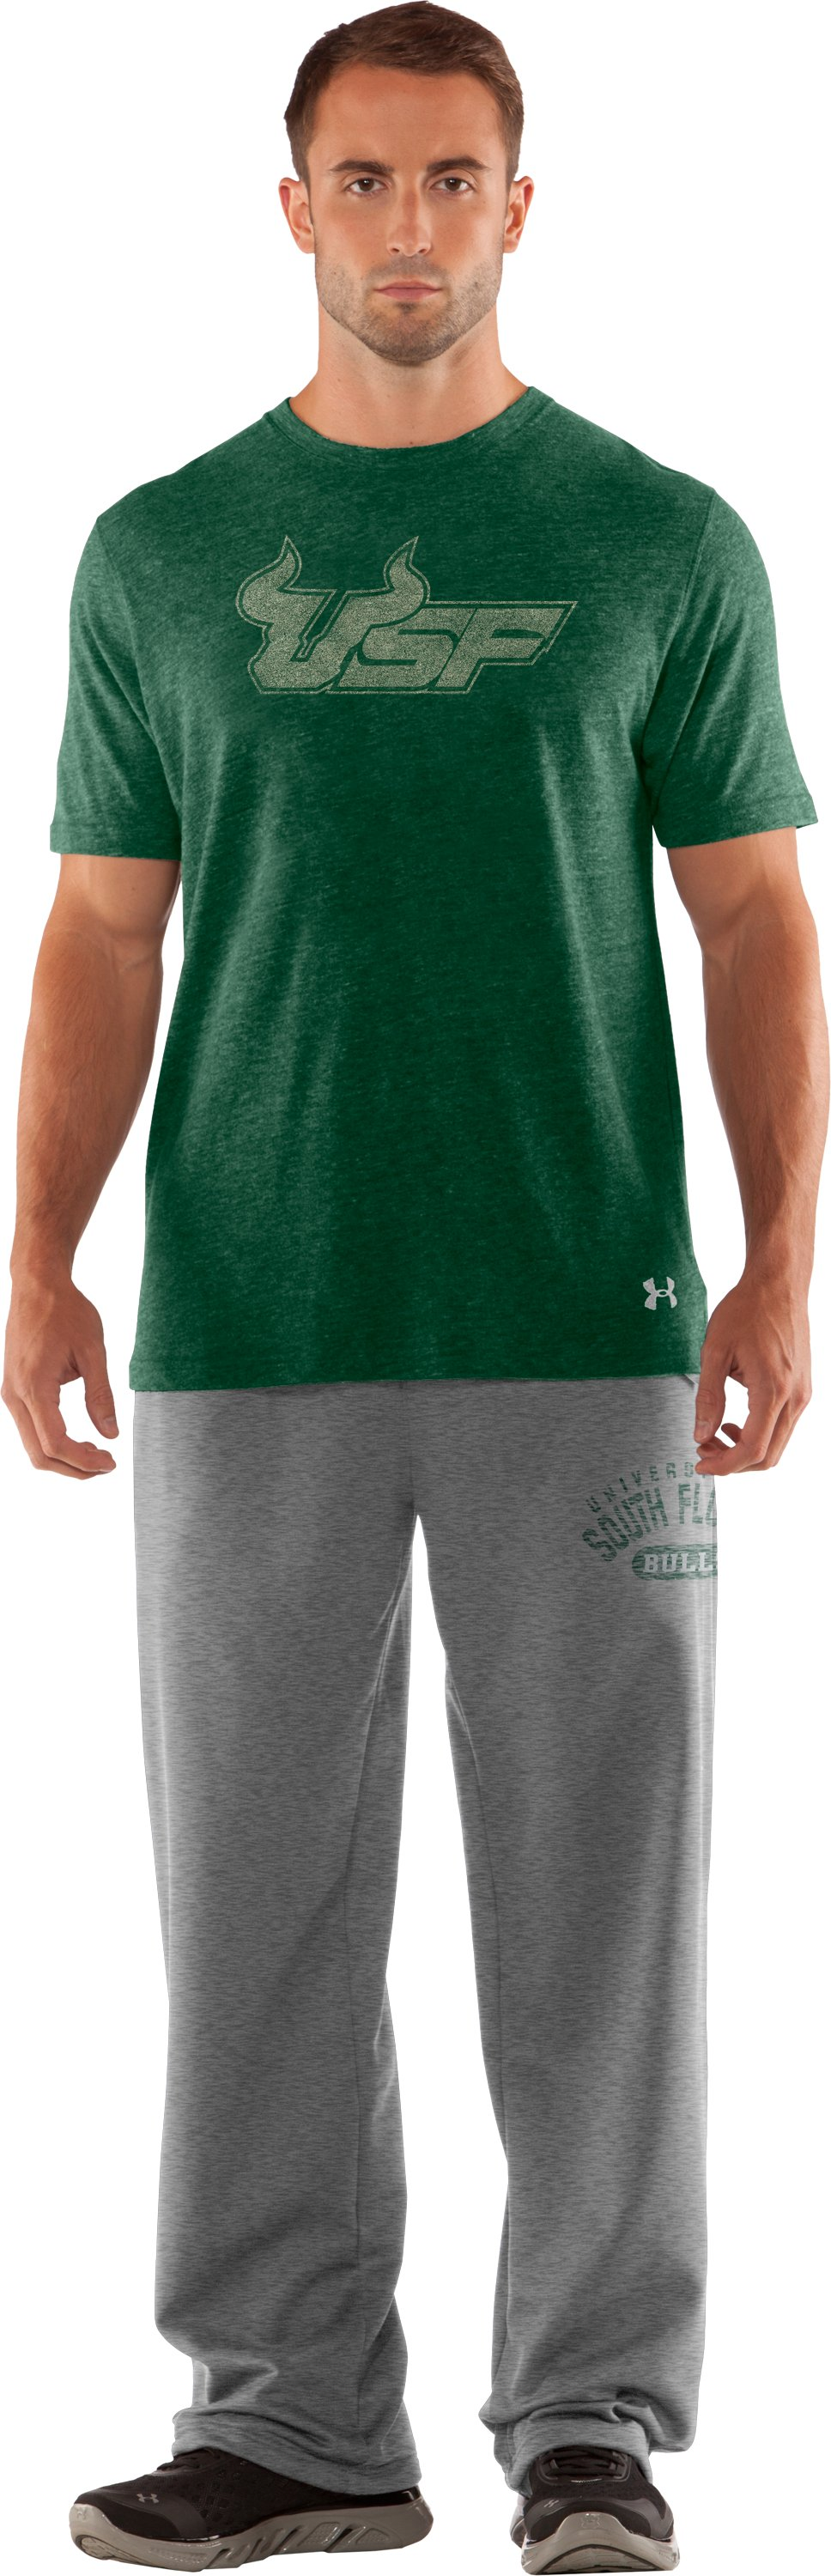 Men's South Florida Under Armour® Legacy Pants, True Gray Heather, Front